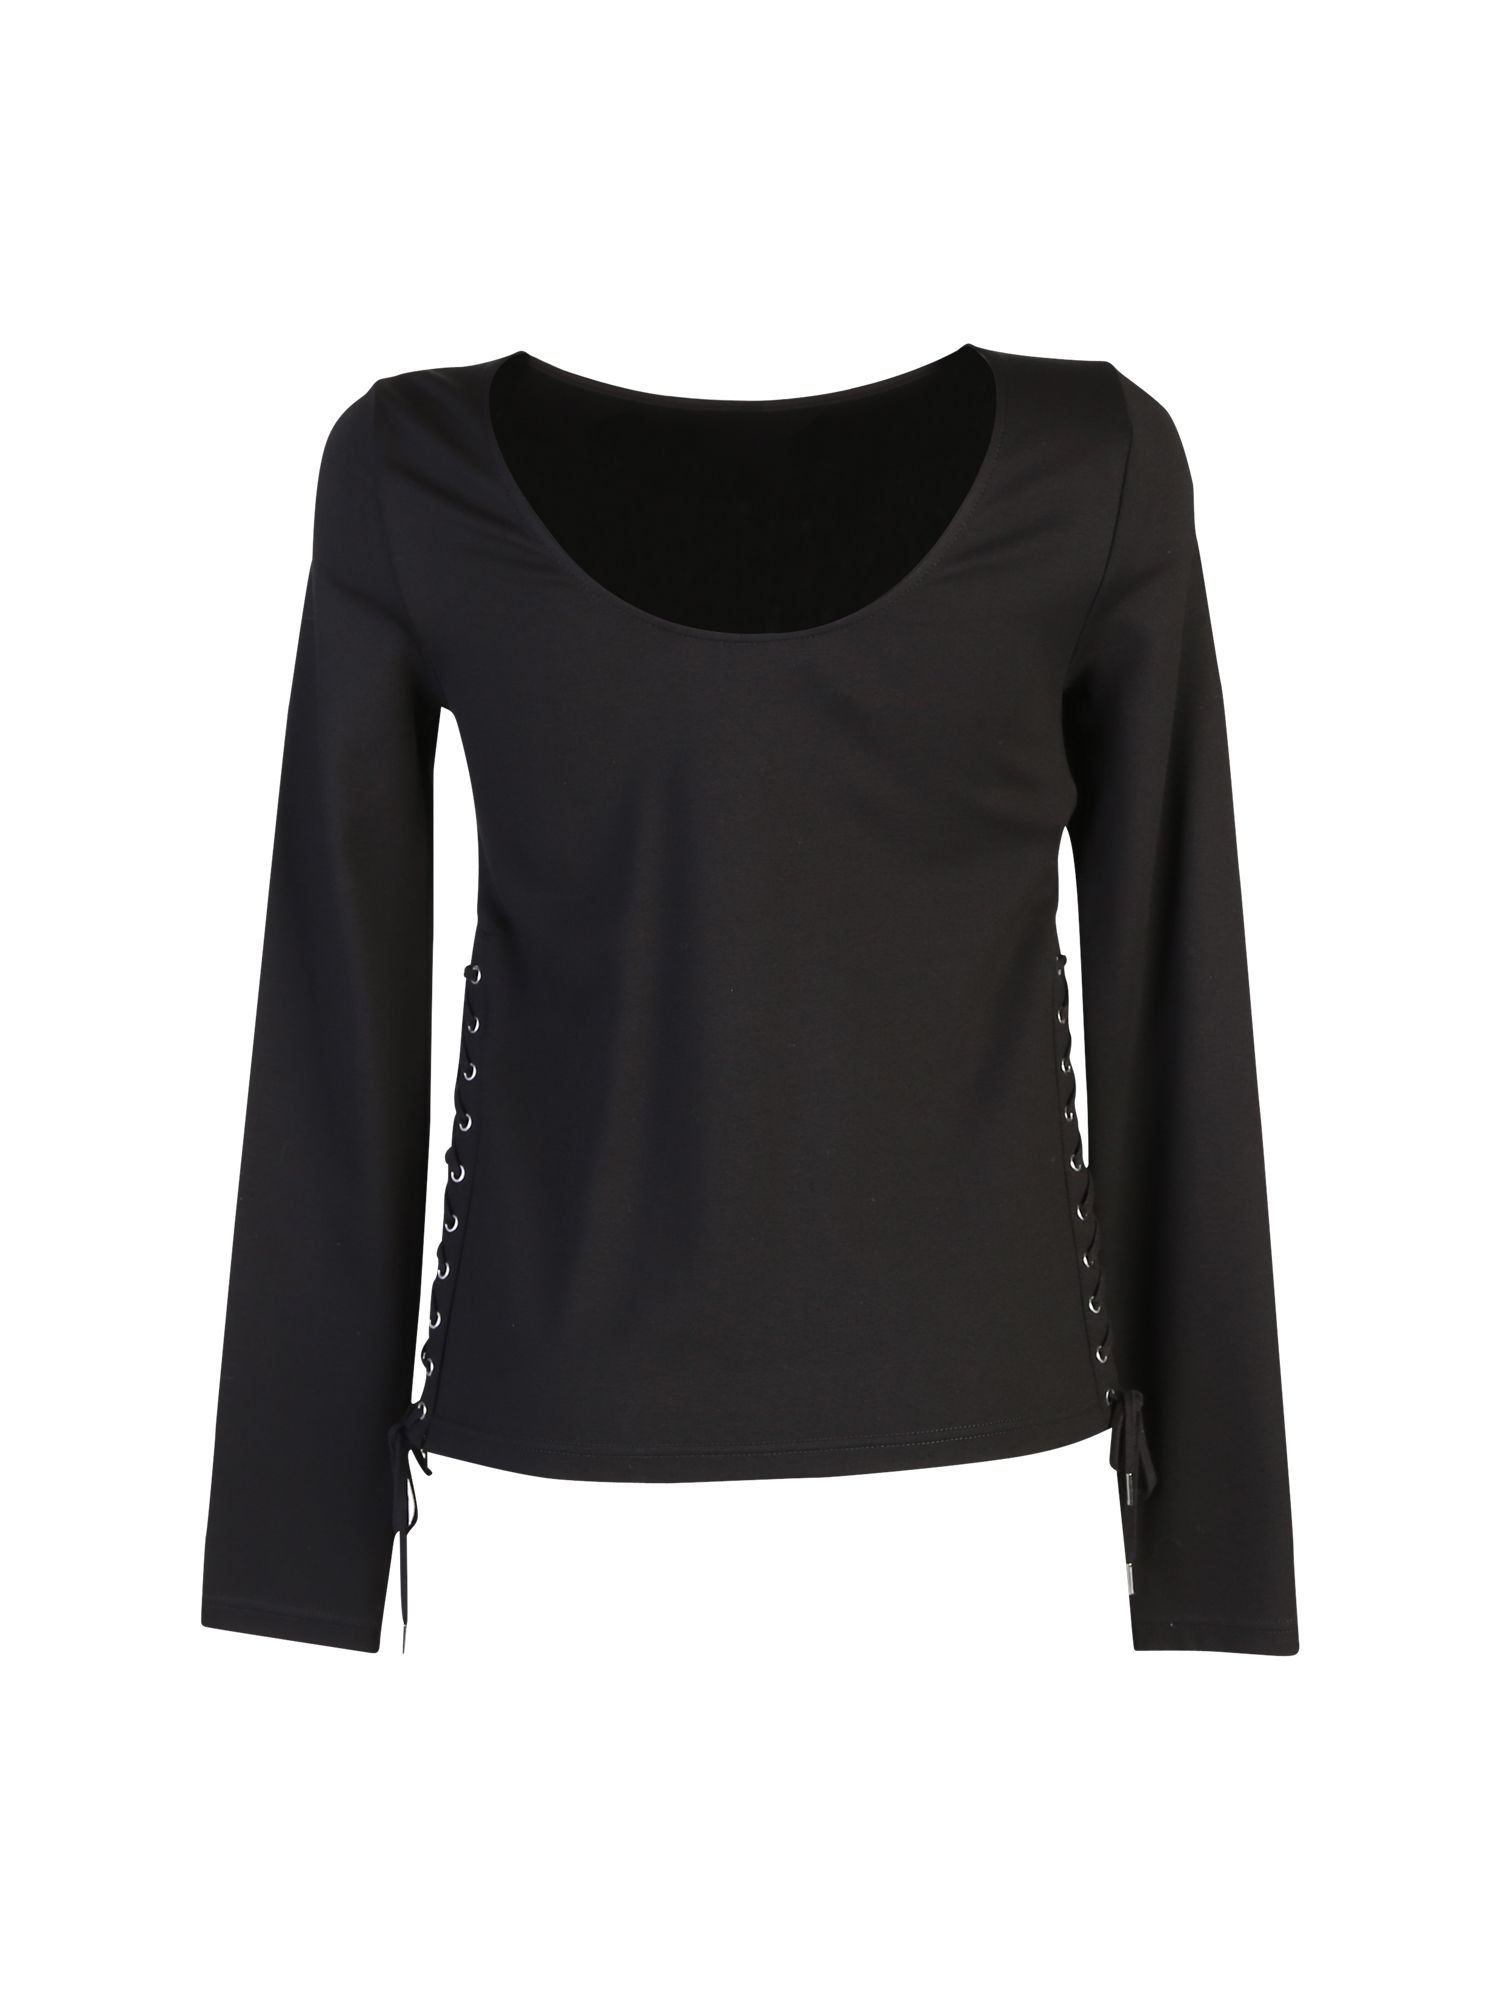 Laceup Long Sleeve Top